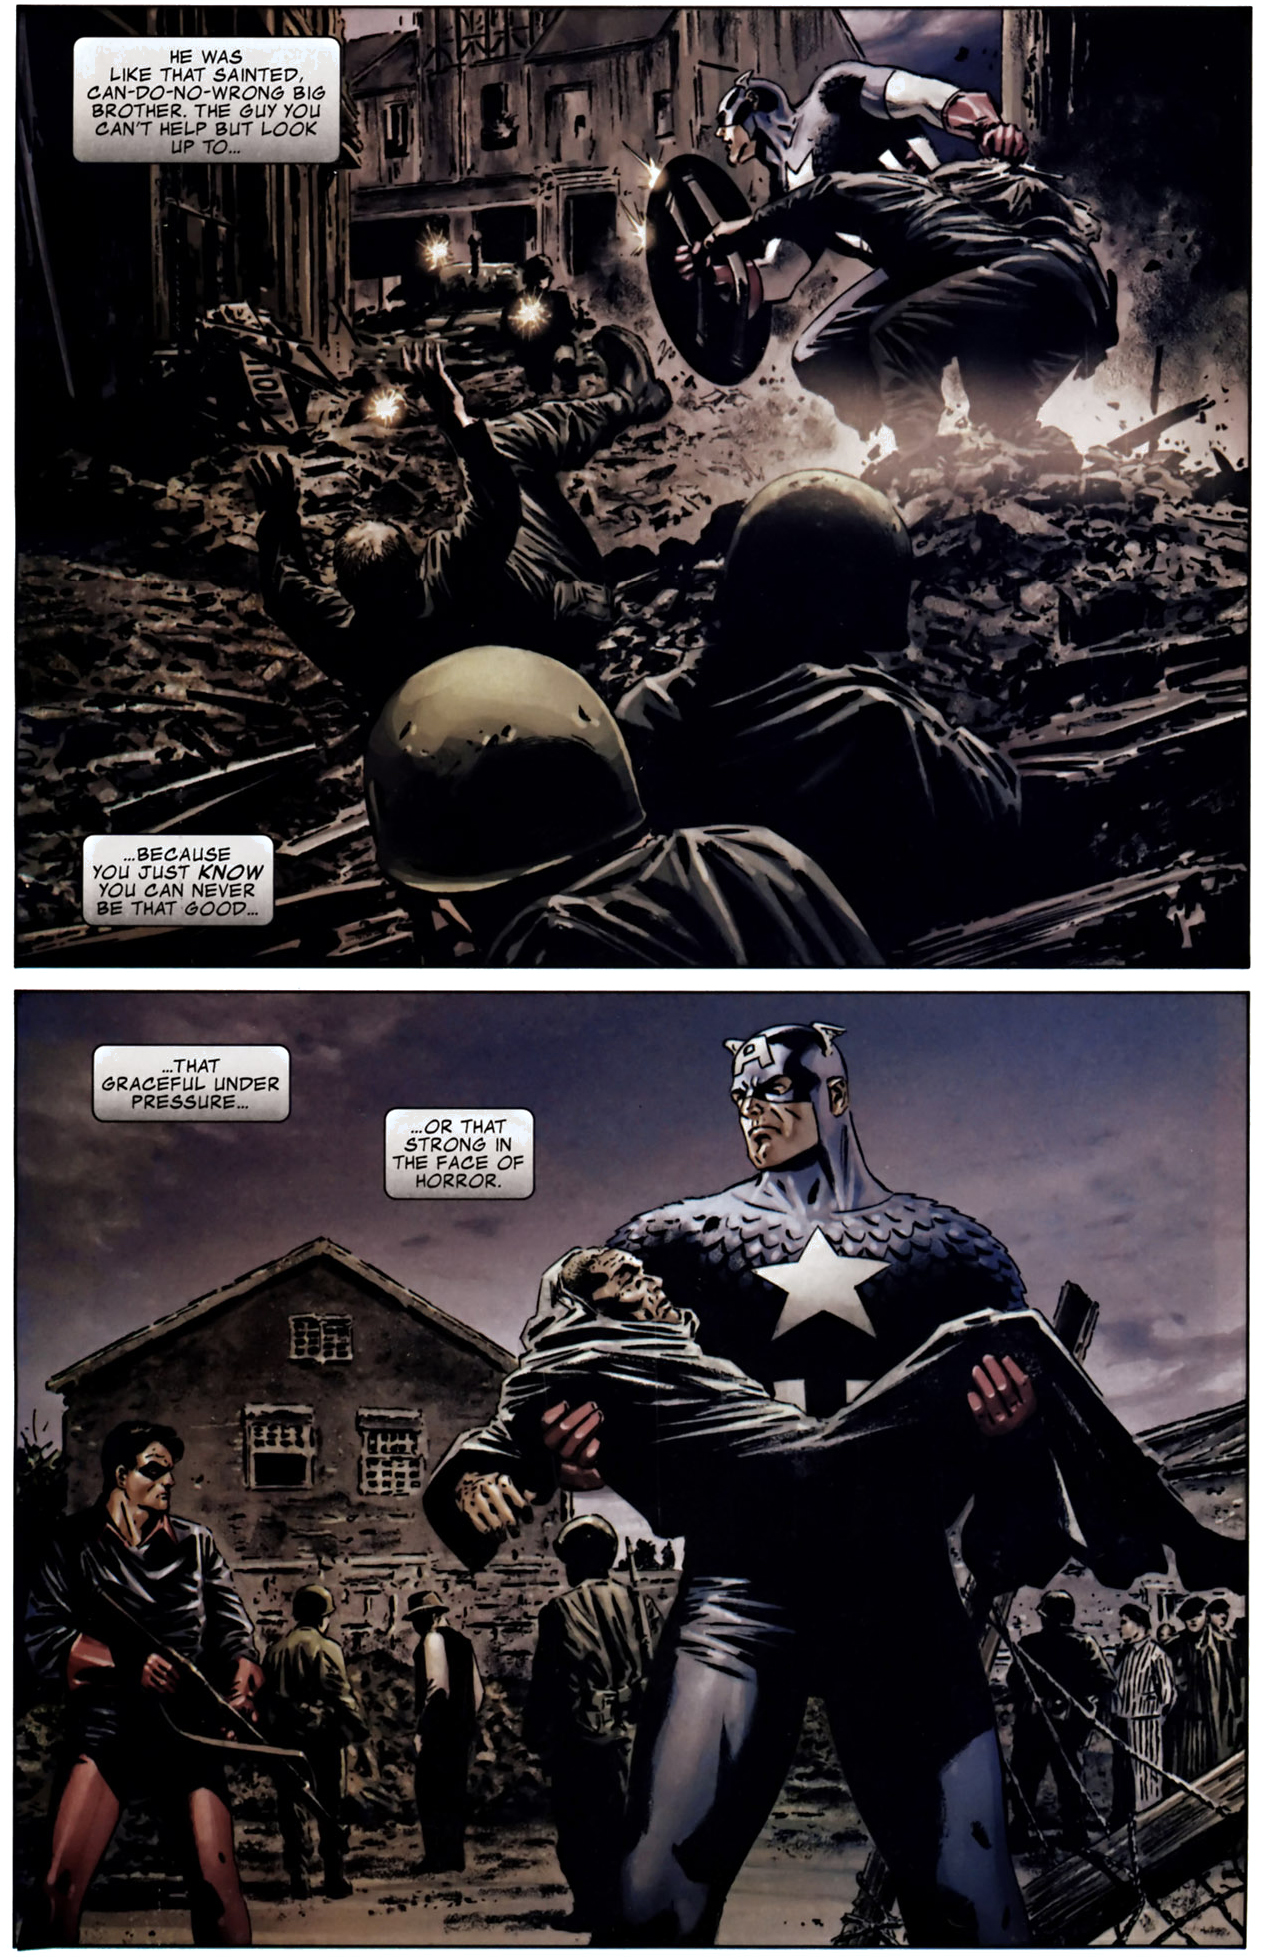 winter soldier's thoughts on captain america